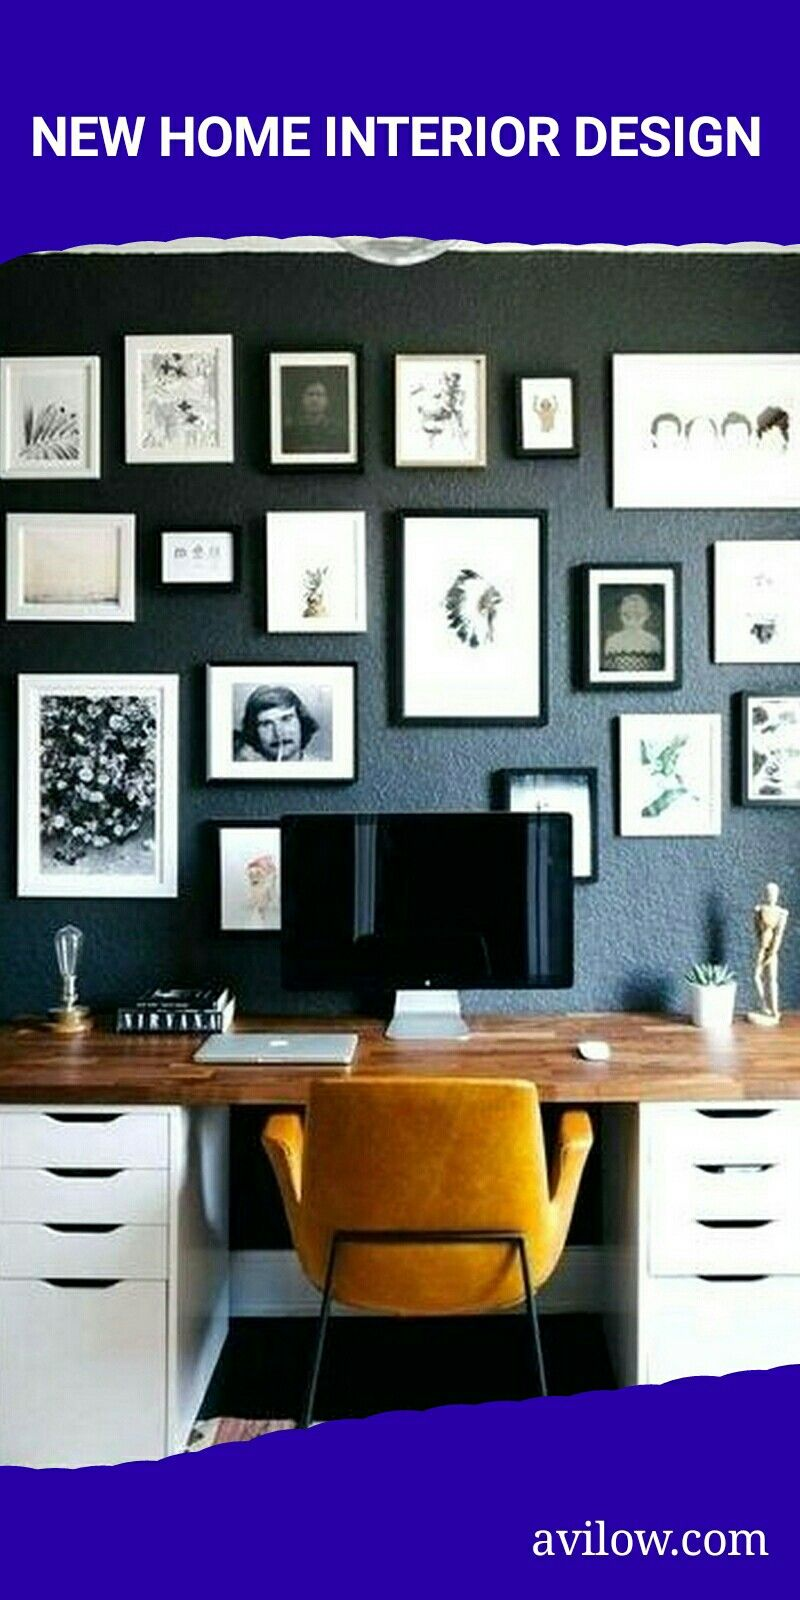 New home interior desain homeinterior also inspiring decorating ideas design rh pinterest